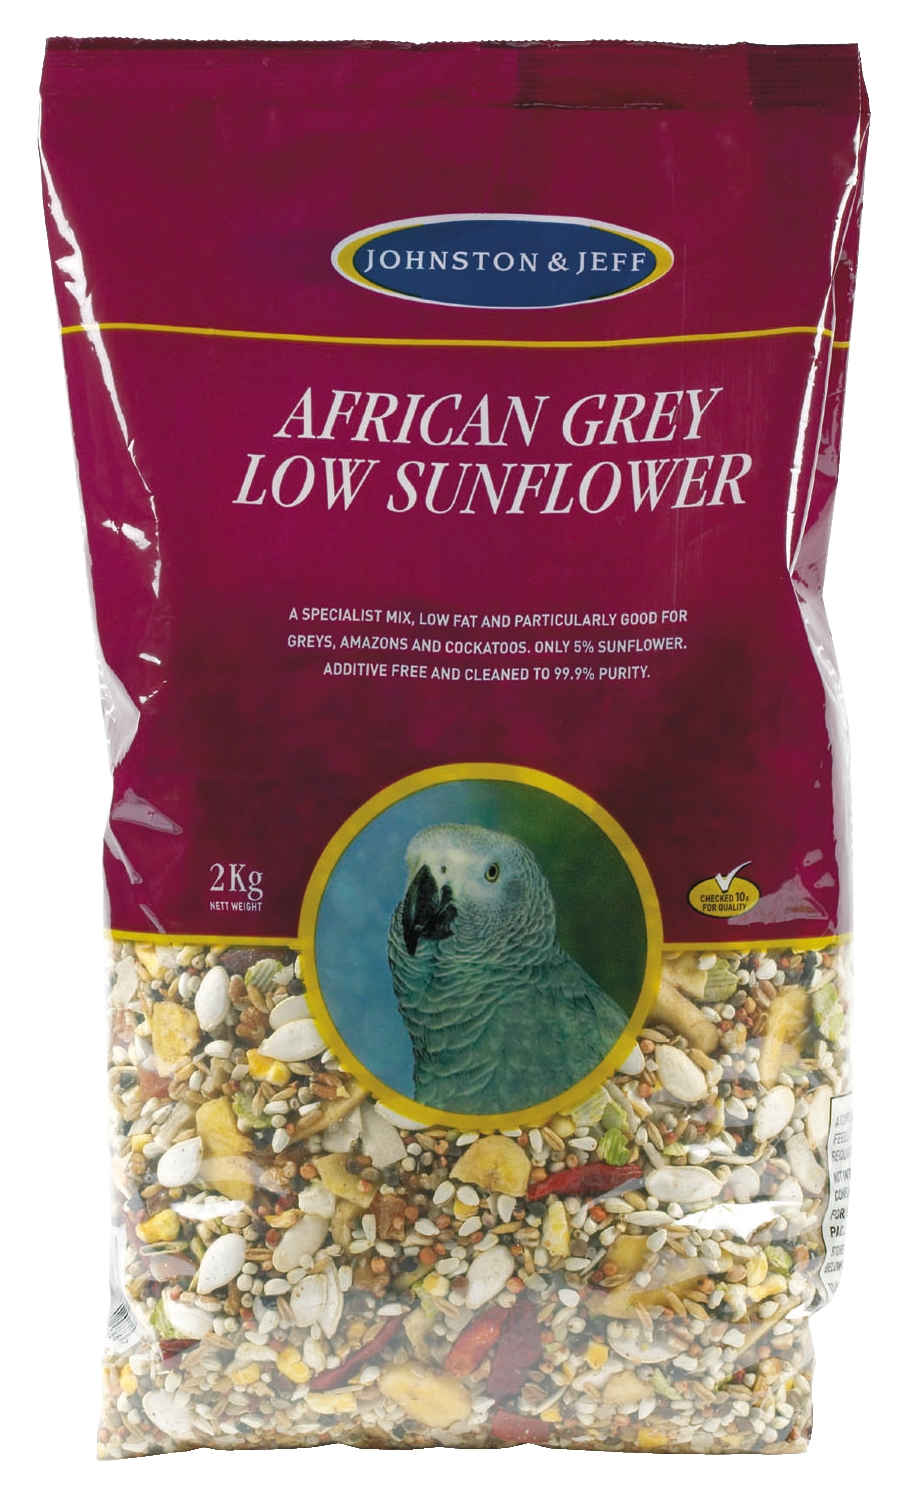 Johnston & Jeff Low Sunflower African Grey Bird Food